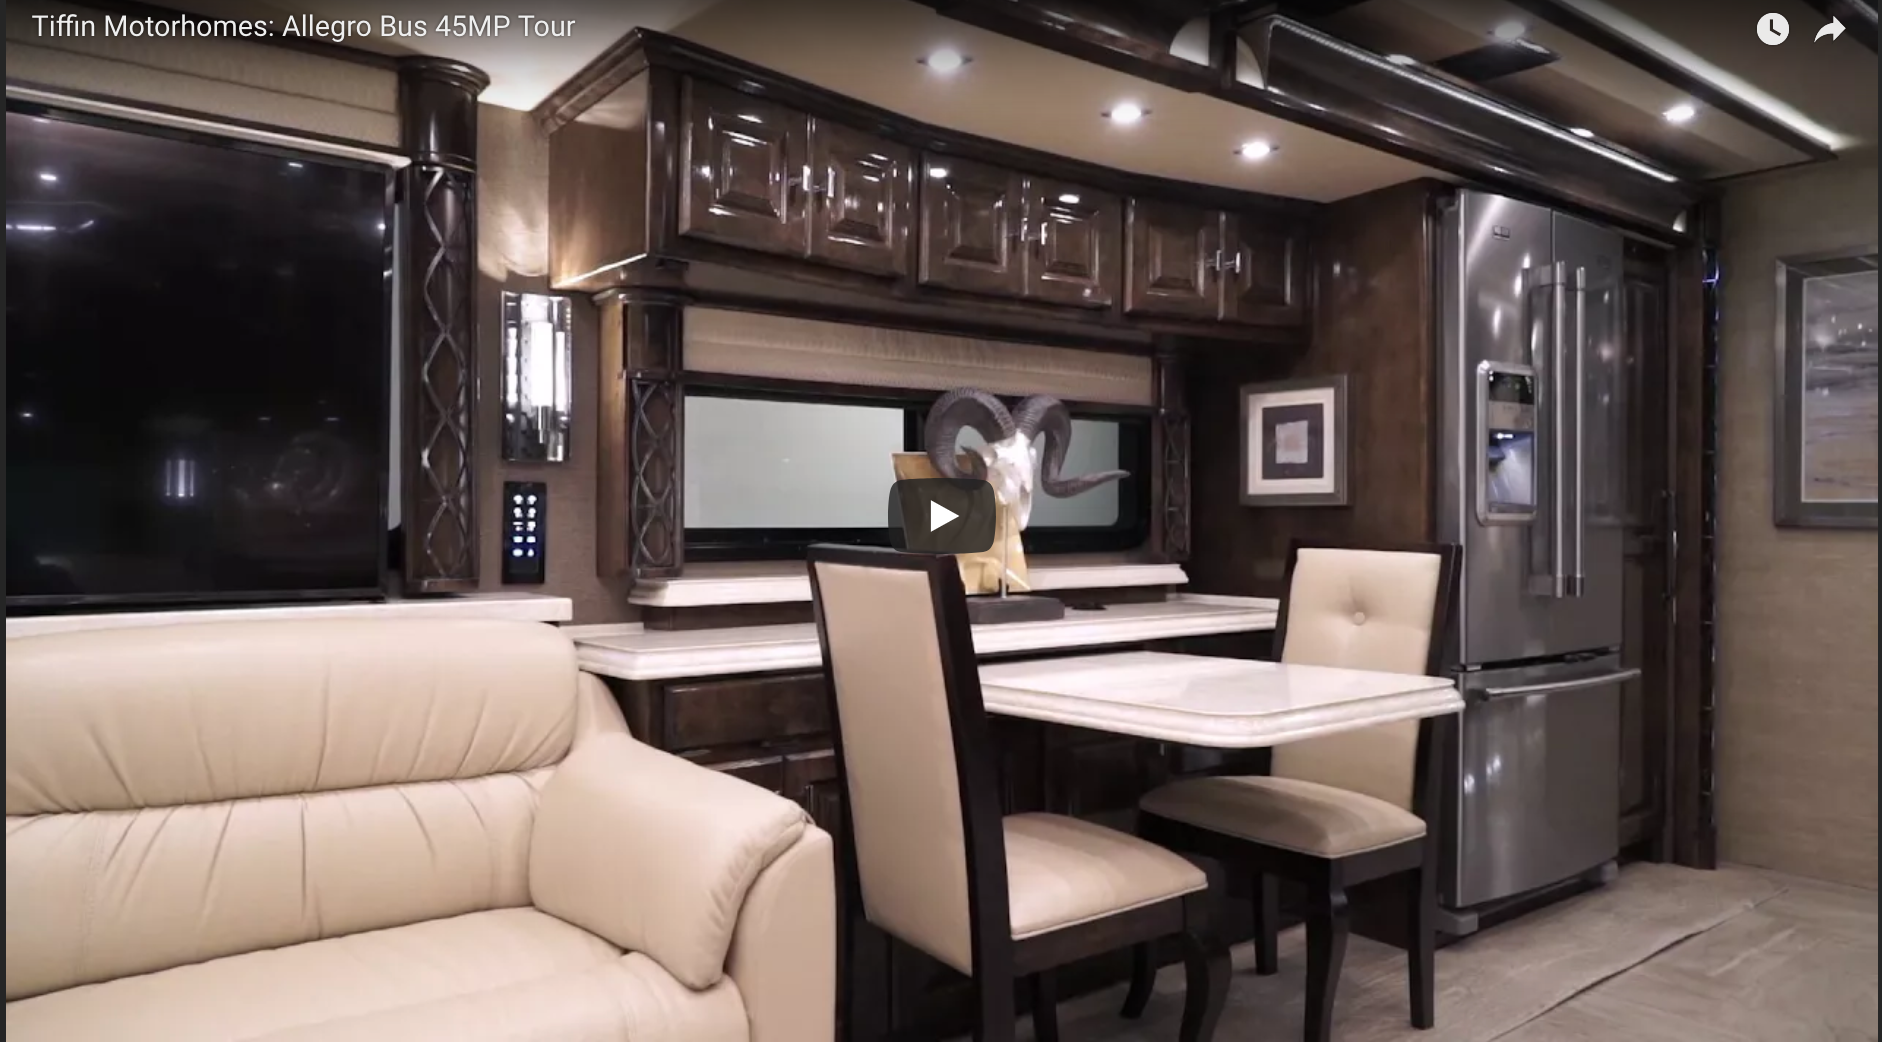 Stunning Video Tour of the Tiffin Allegro Bus 45MP RV Interior | RV